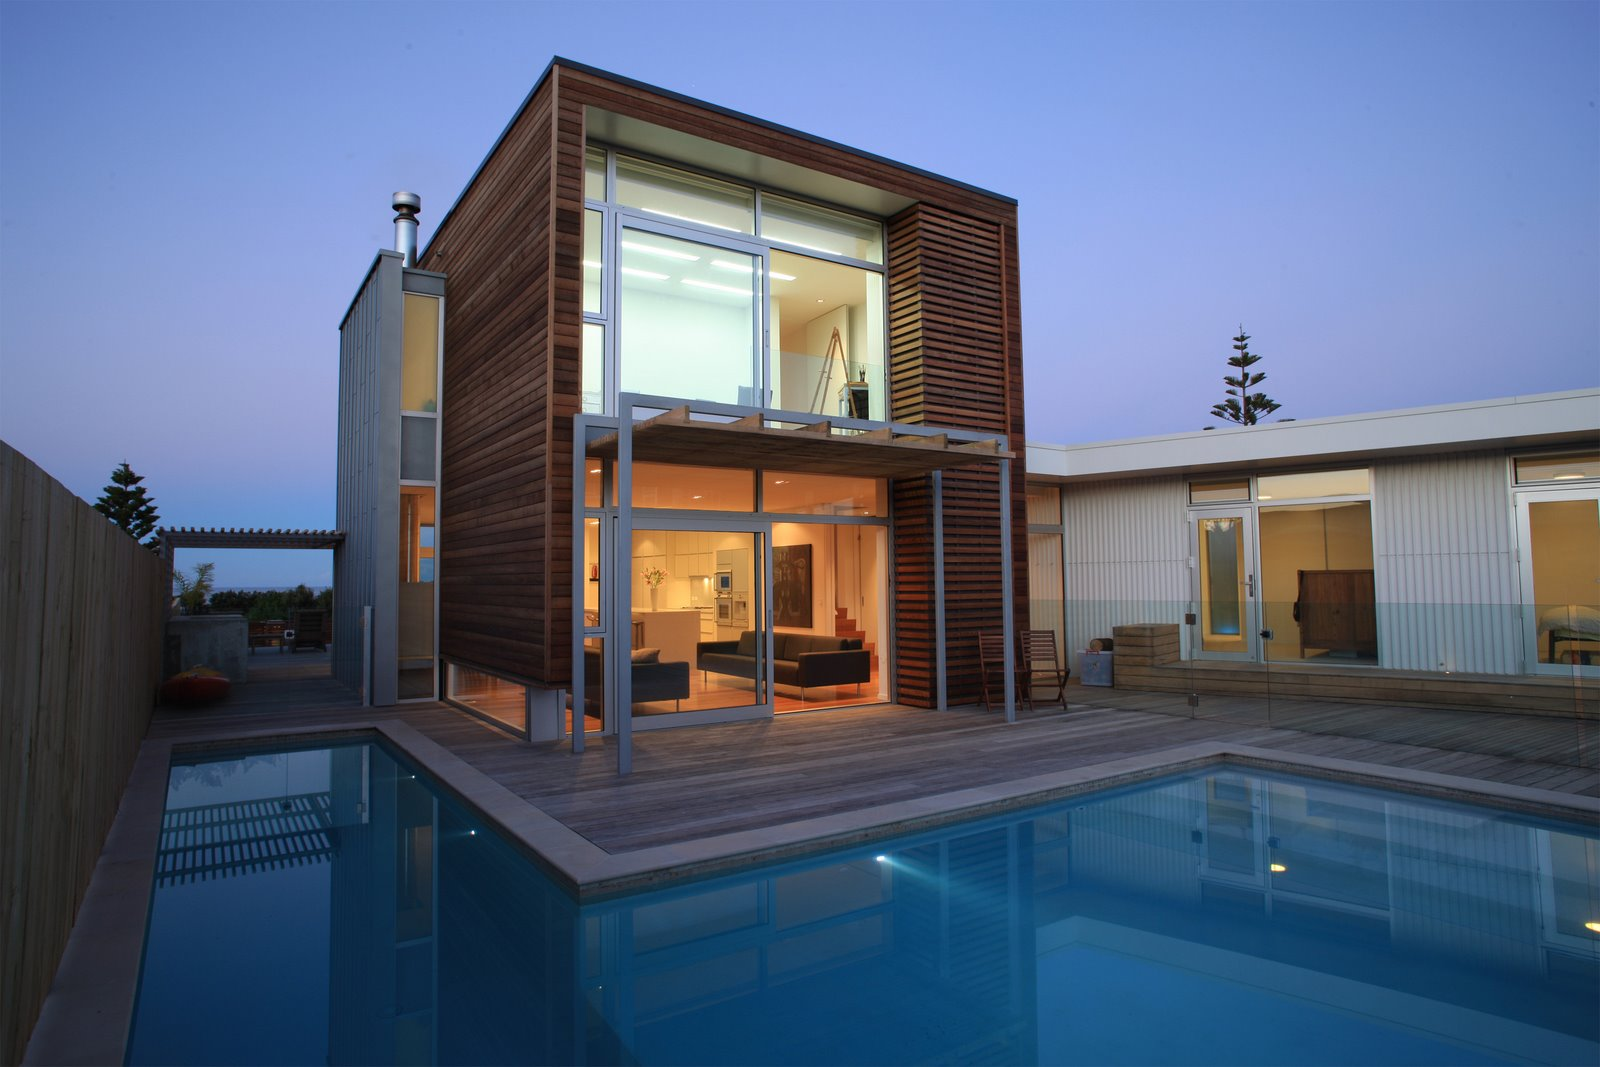 architecture-home-modern-house-design-l-6504c0f14f0e6f7c